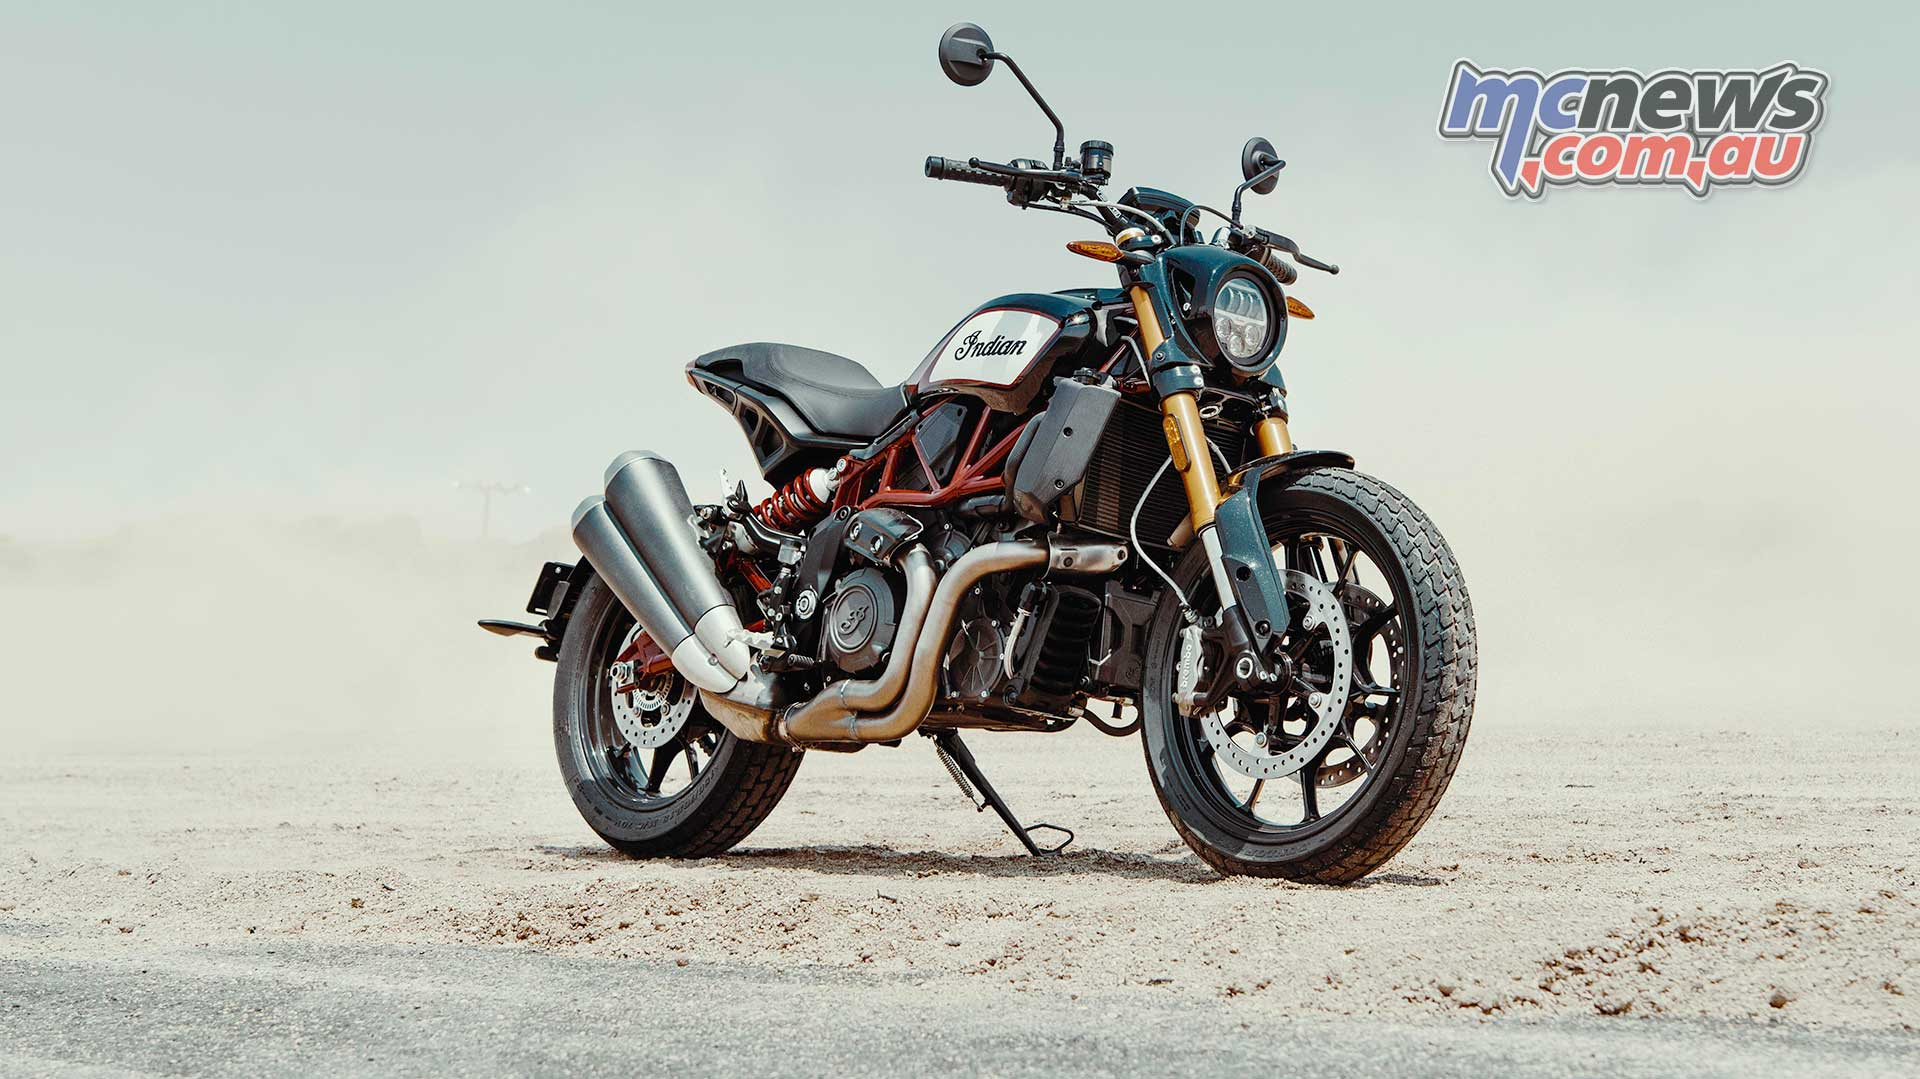 Indian Ftr 1200 To Start At 19 995 In Australia Mcnews